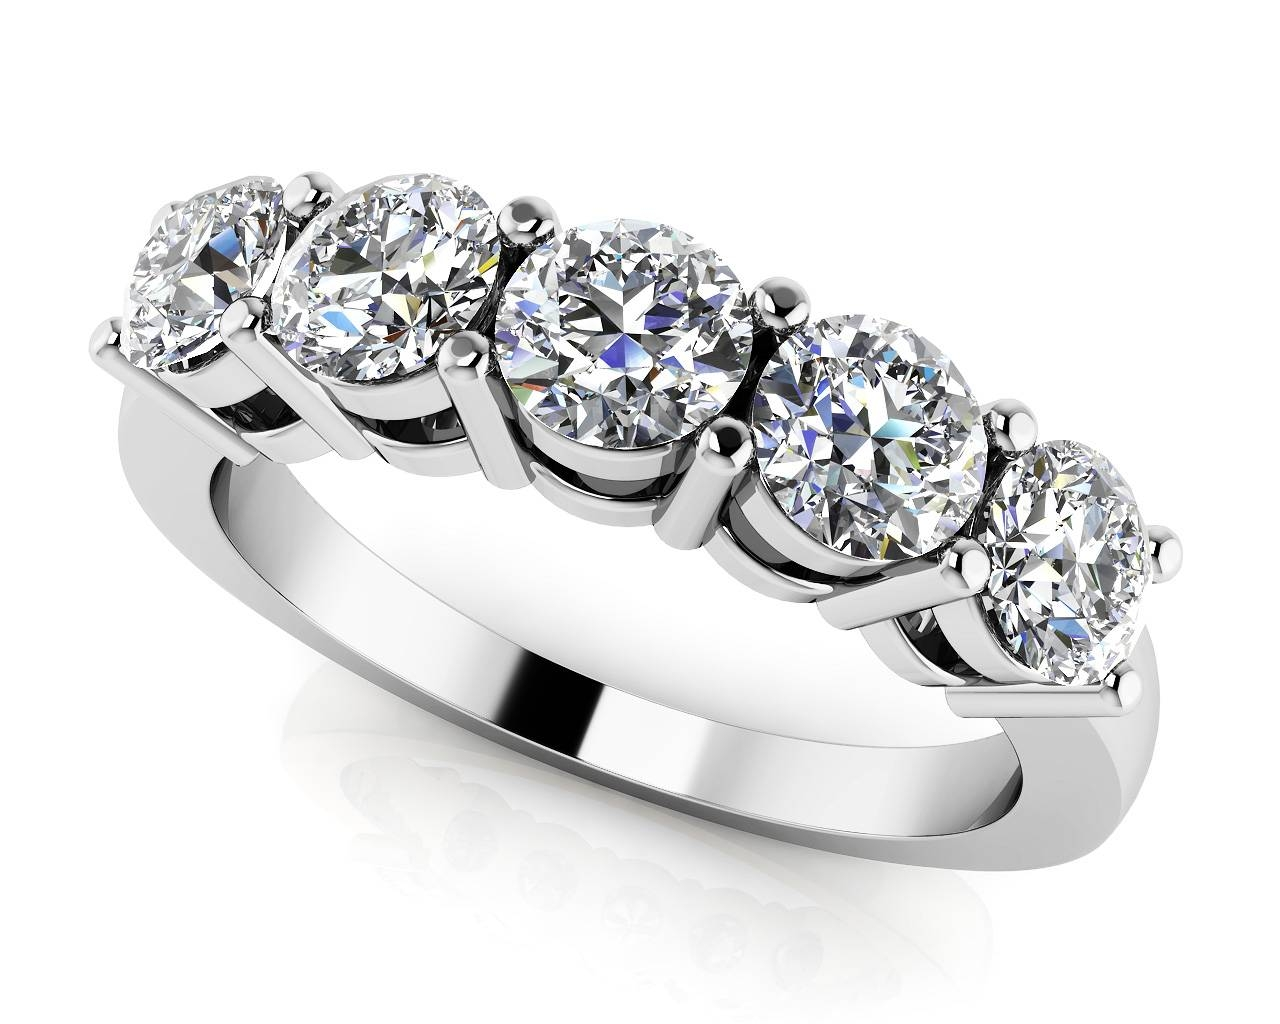 Design Your Own Diamond Anniversary Ring & Eternity Ring In Latest Diamond Anniversary Rings (View 5 of 25)